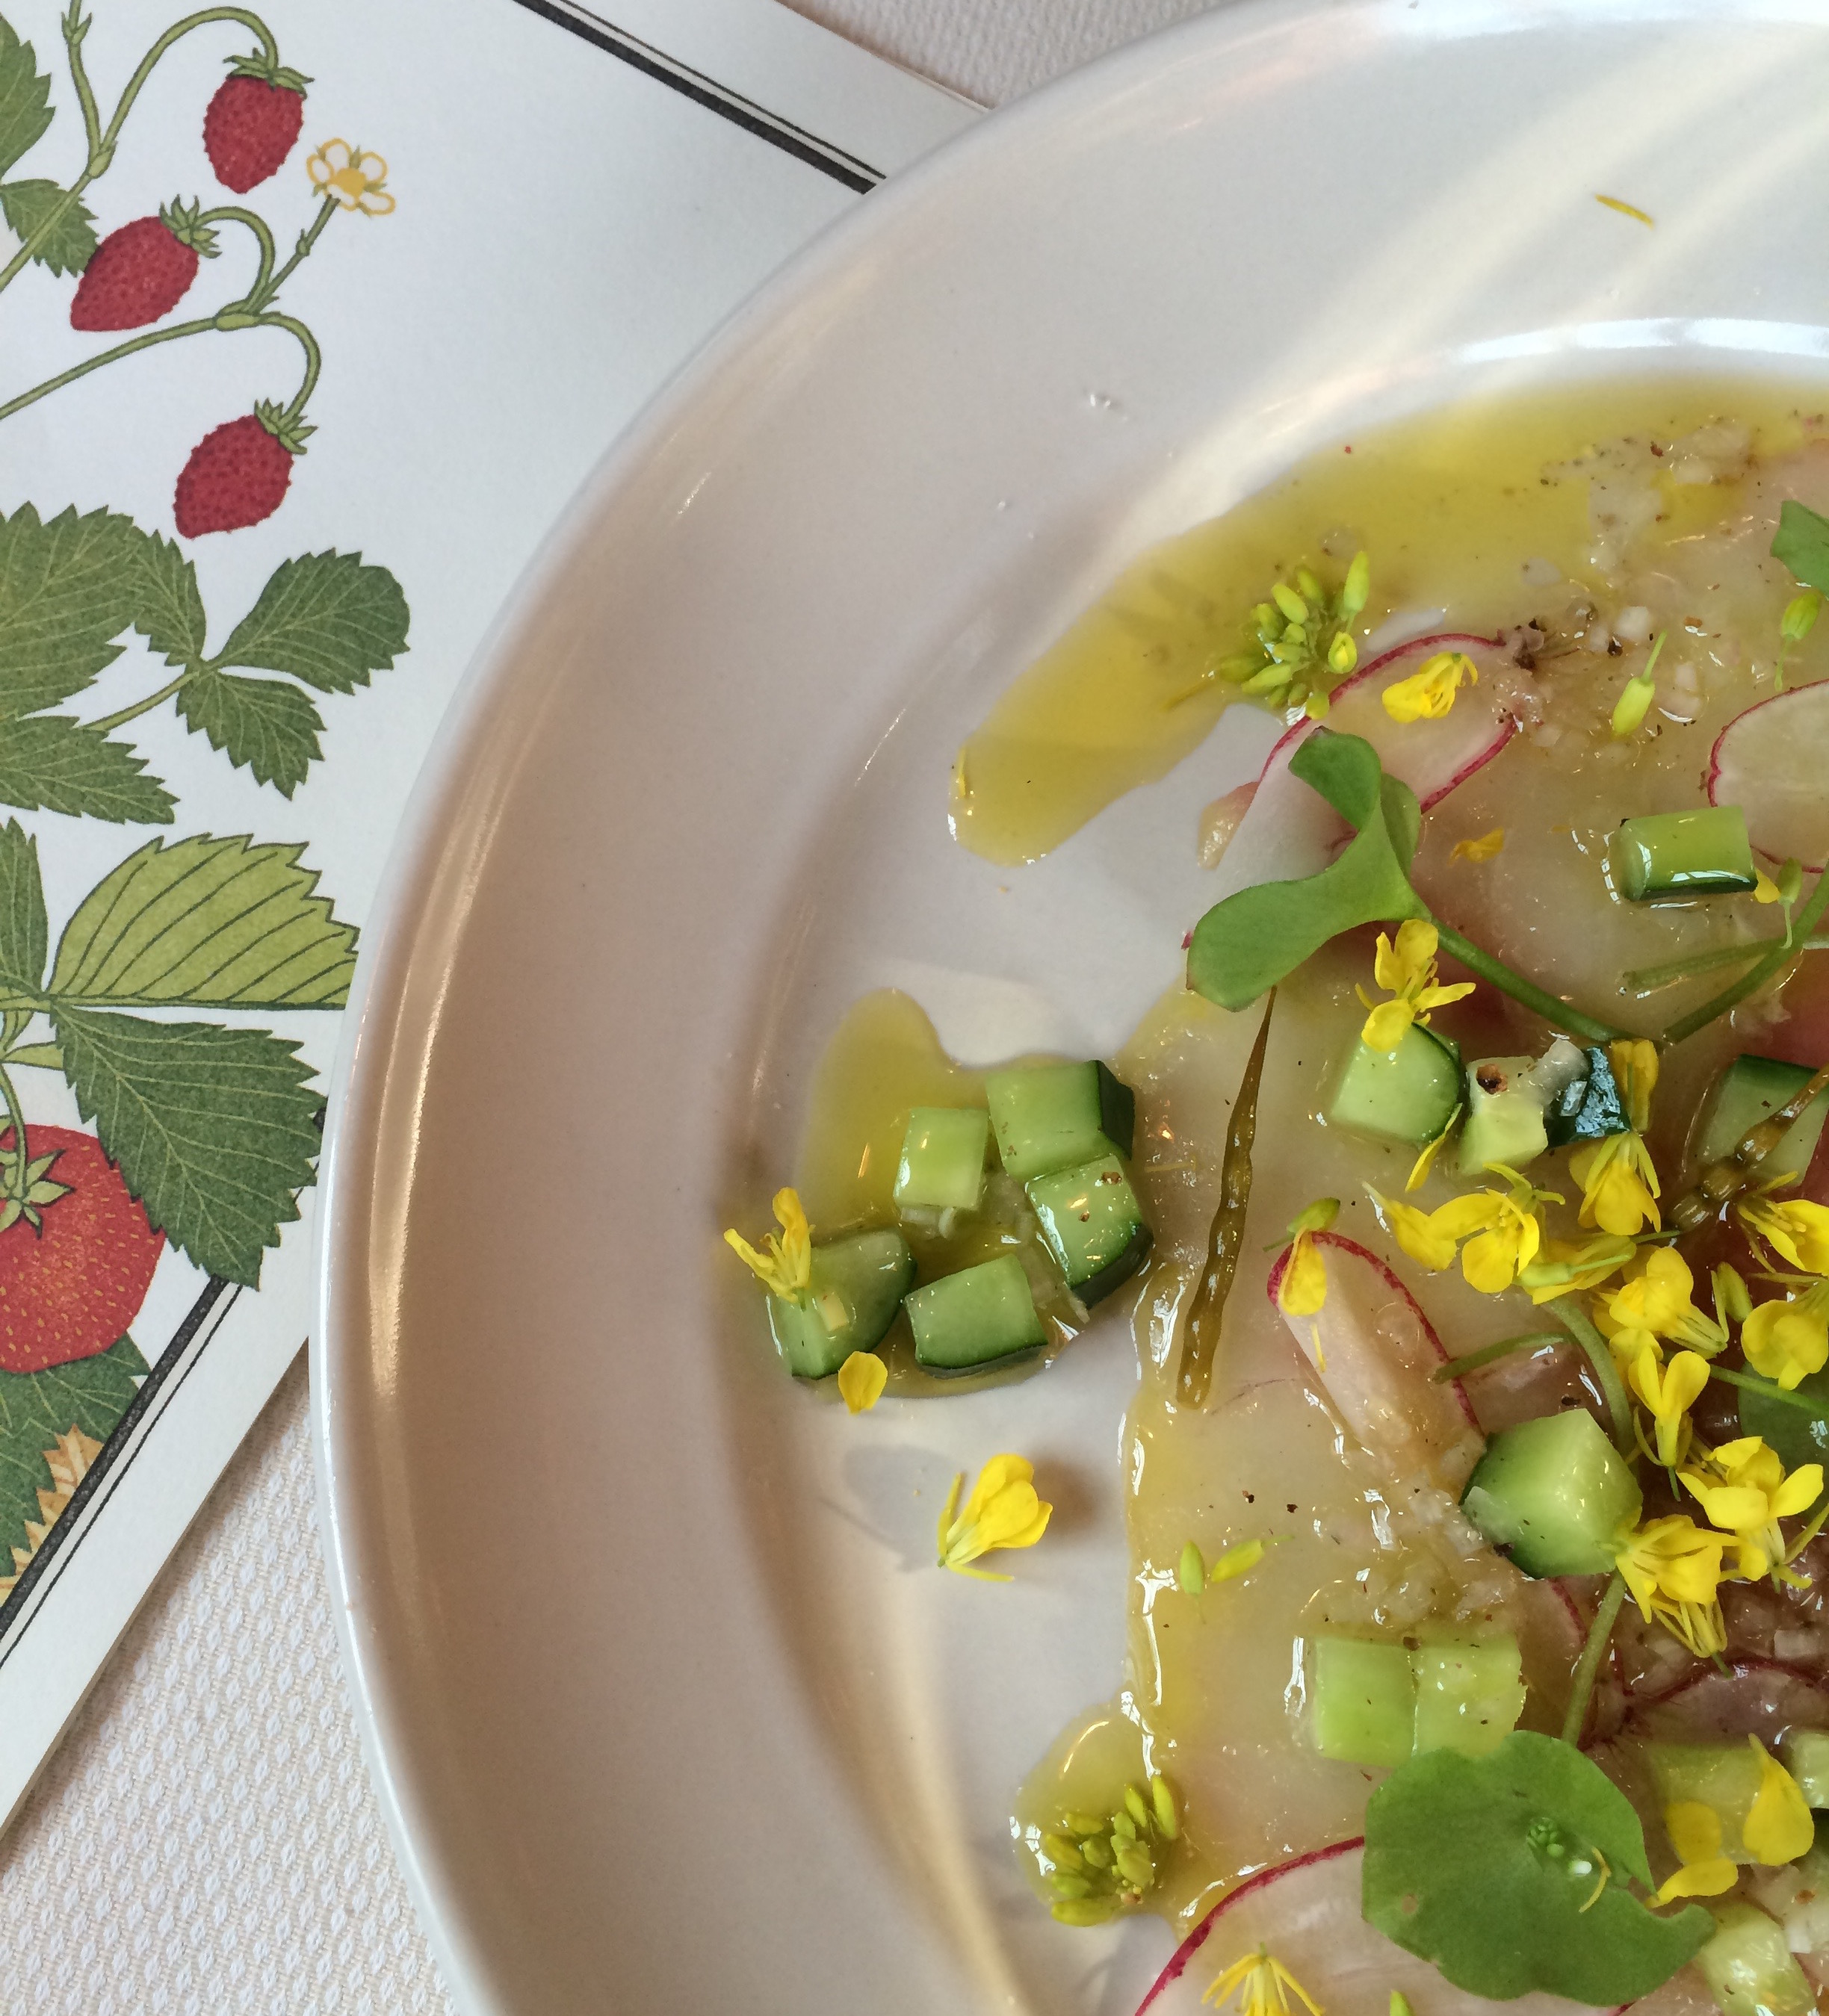 A delicious crudo dish with nasturtium and mustard flower from  Chez Panisse  for Wild and Feral Food Week 2016. Chez Panisse has participated in WFFW every year since its inception.